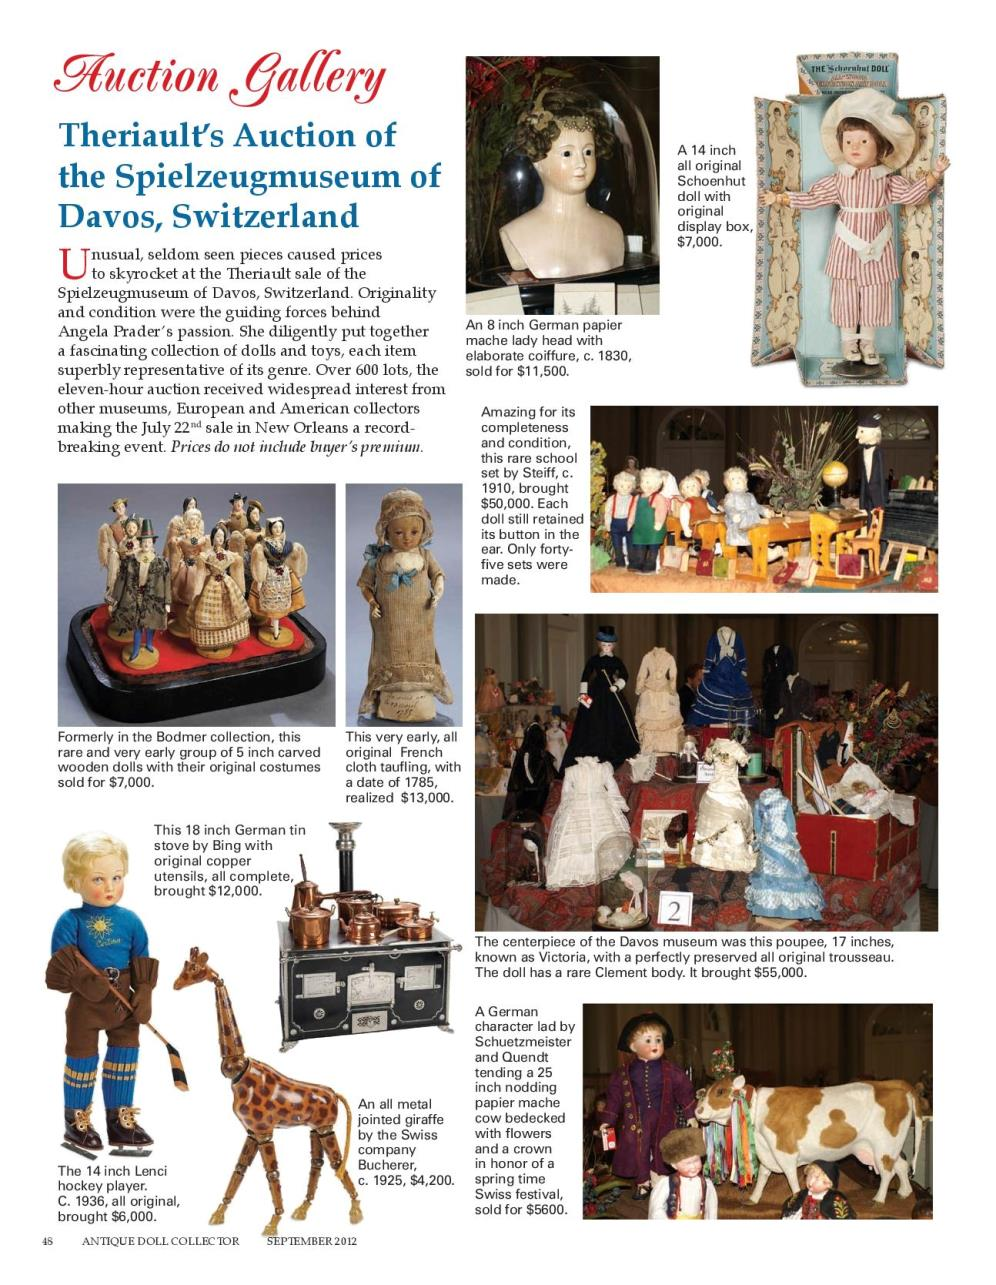 Theriault's Auction of the Spielzeugmuseum of Davos, Switzerland